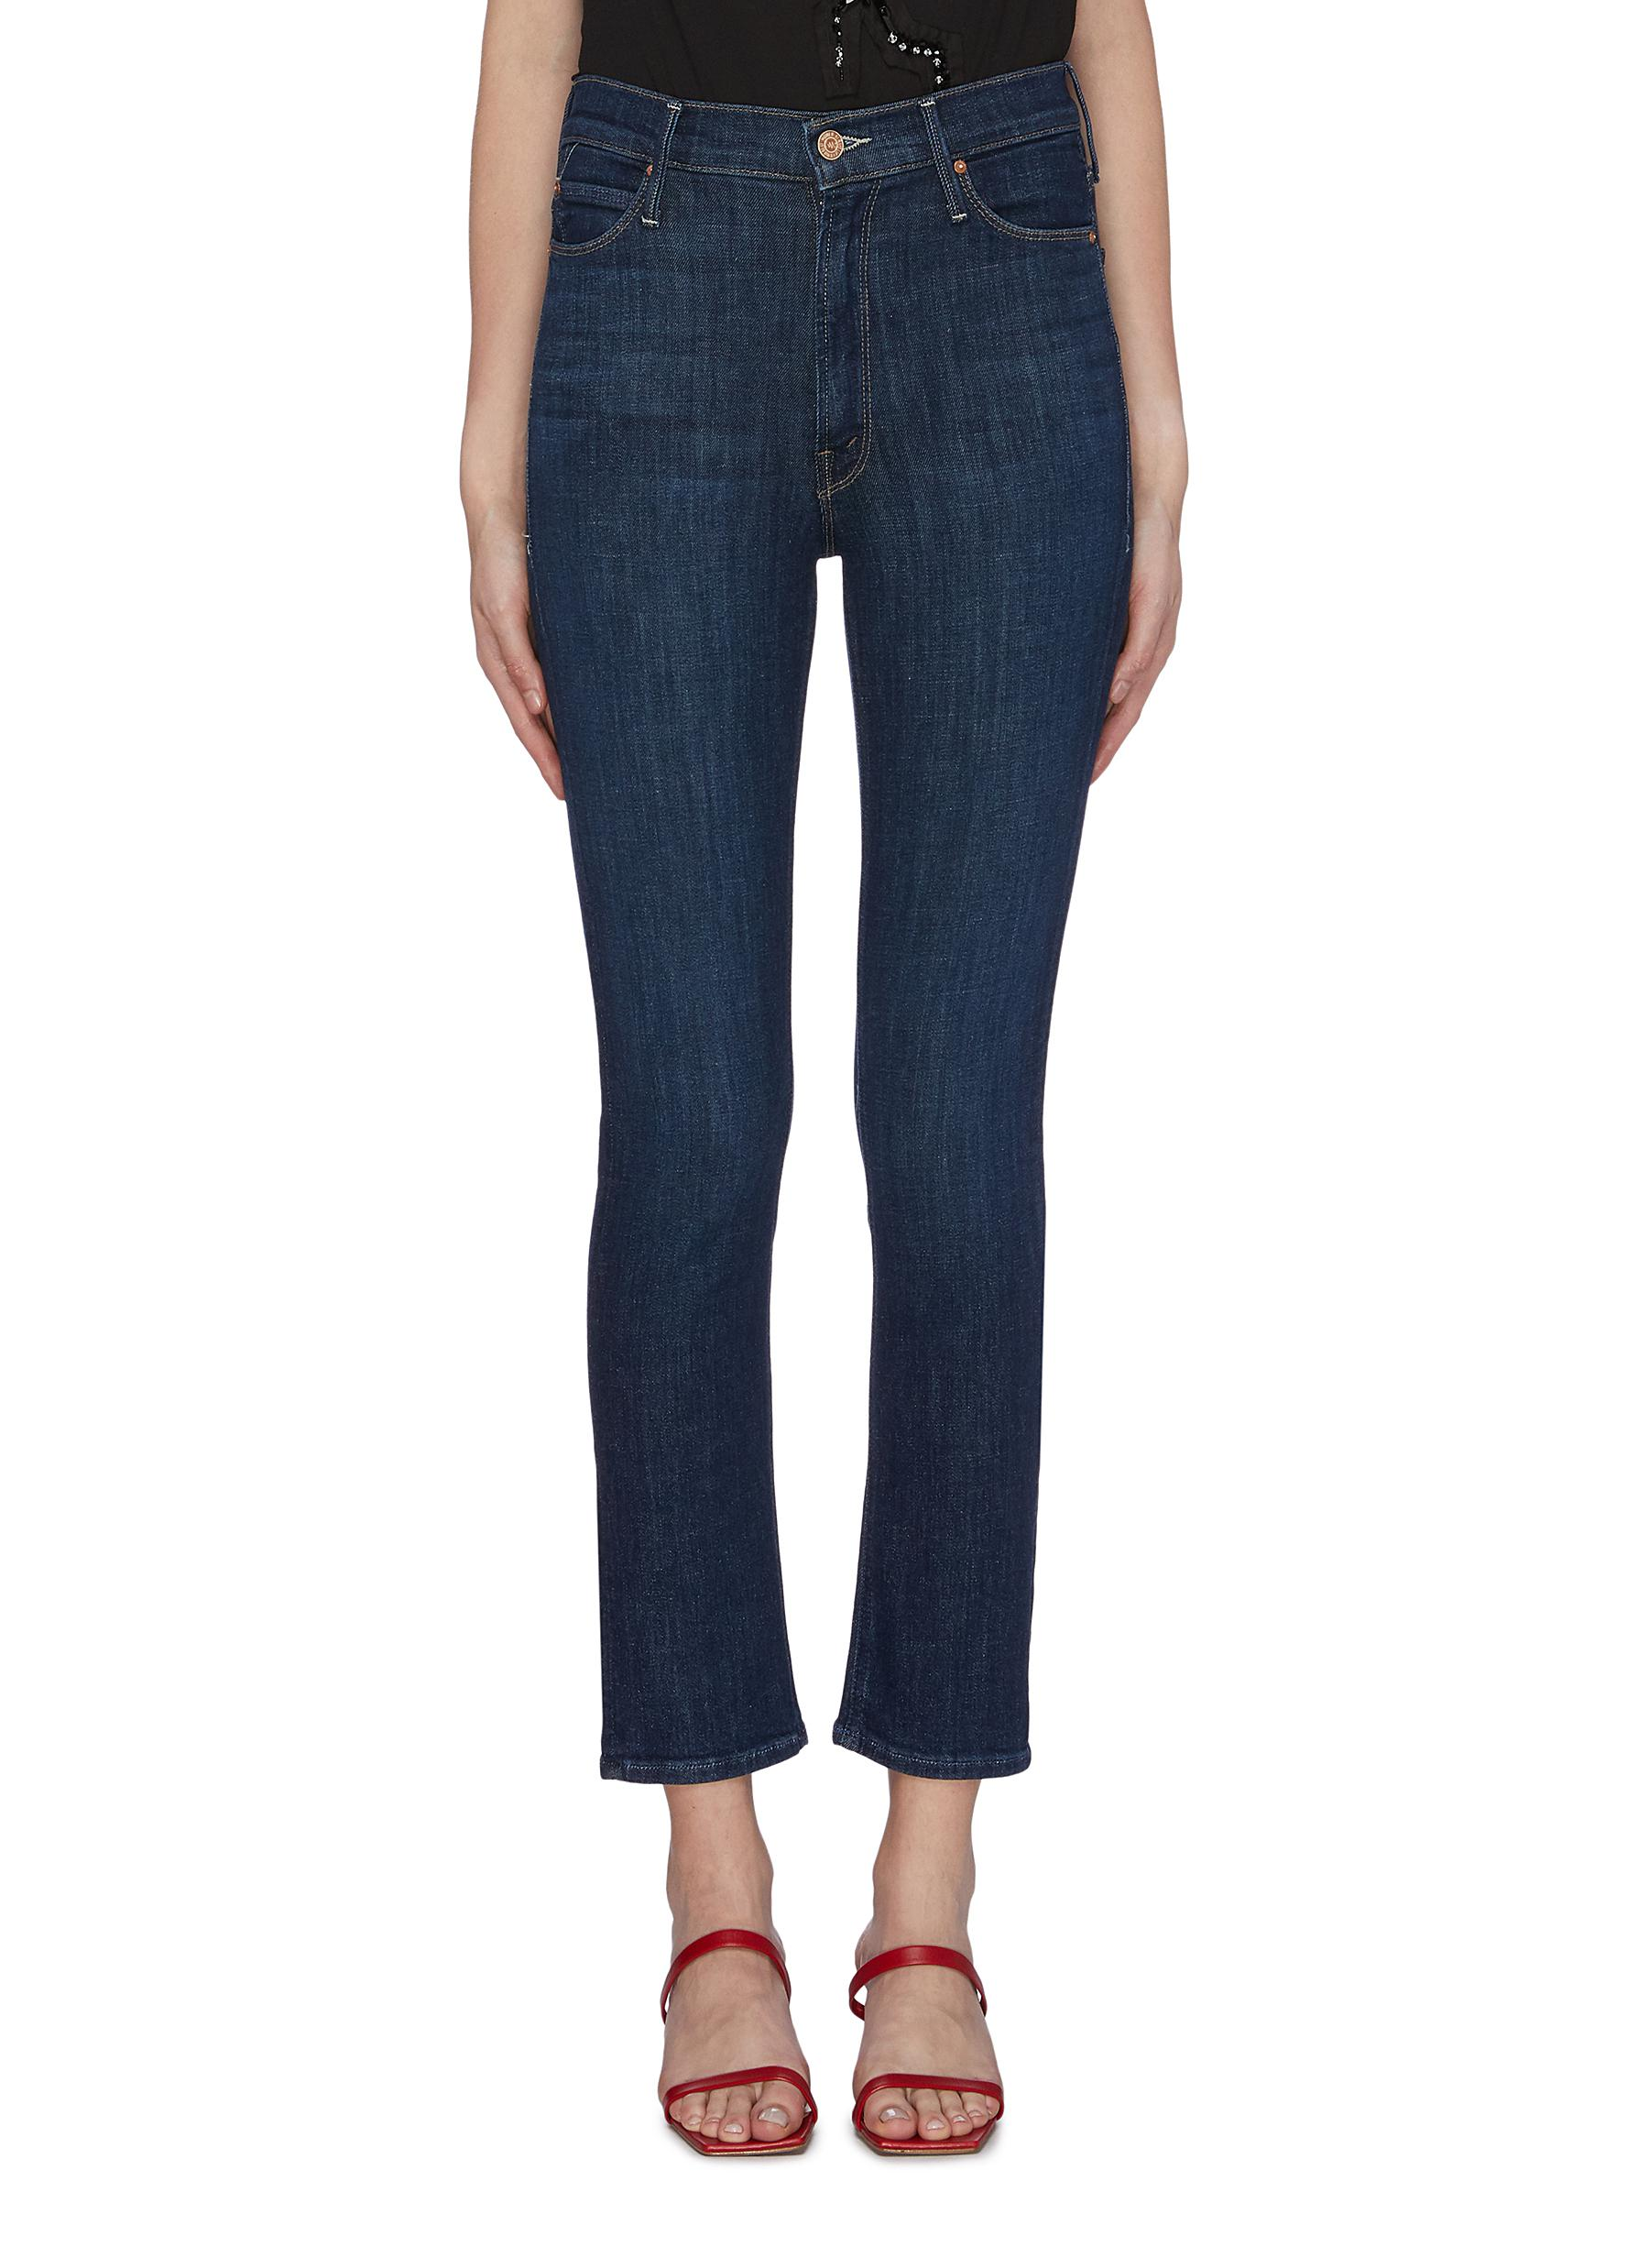 Dazzler straight leg jeans by Mother